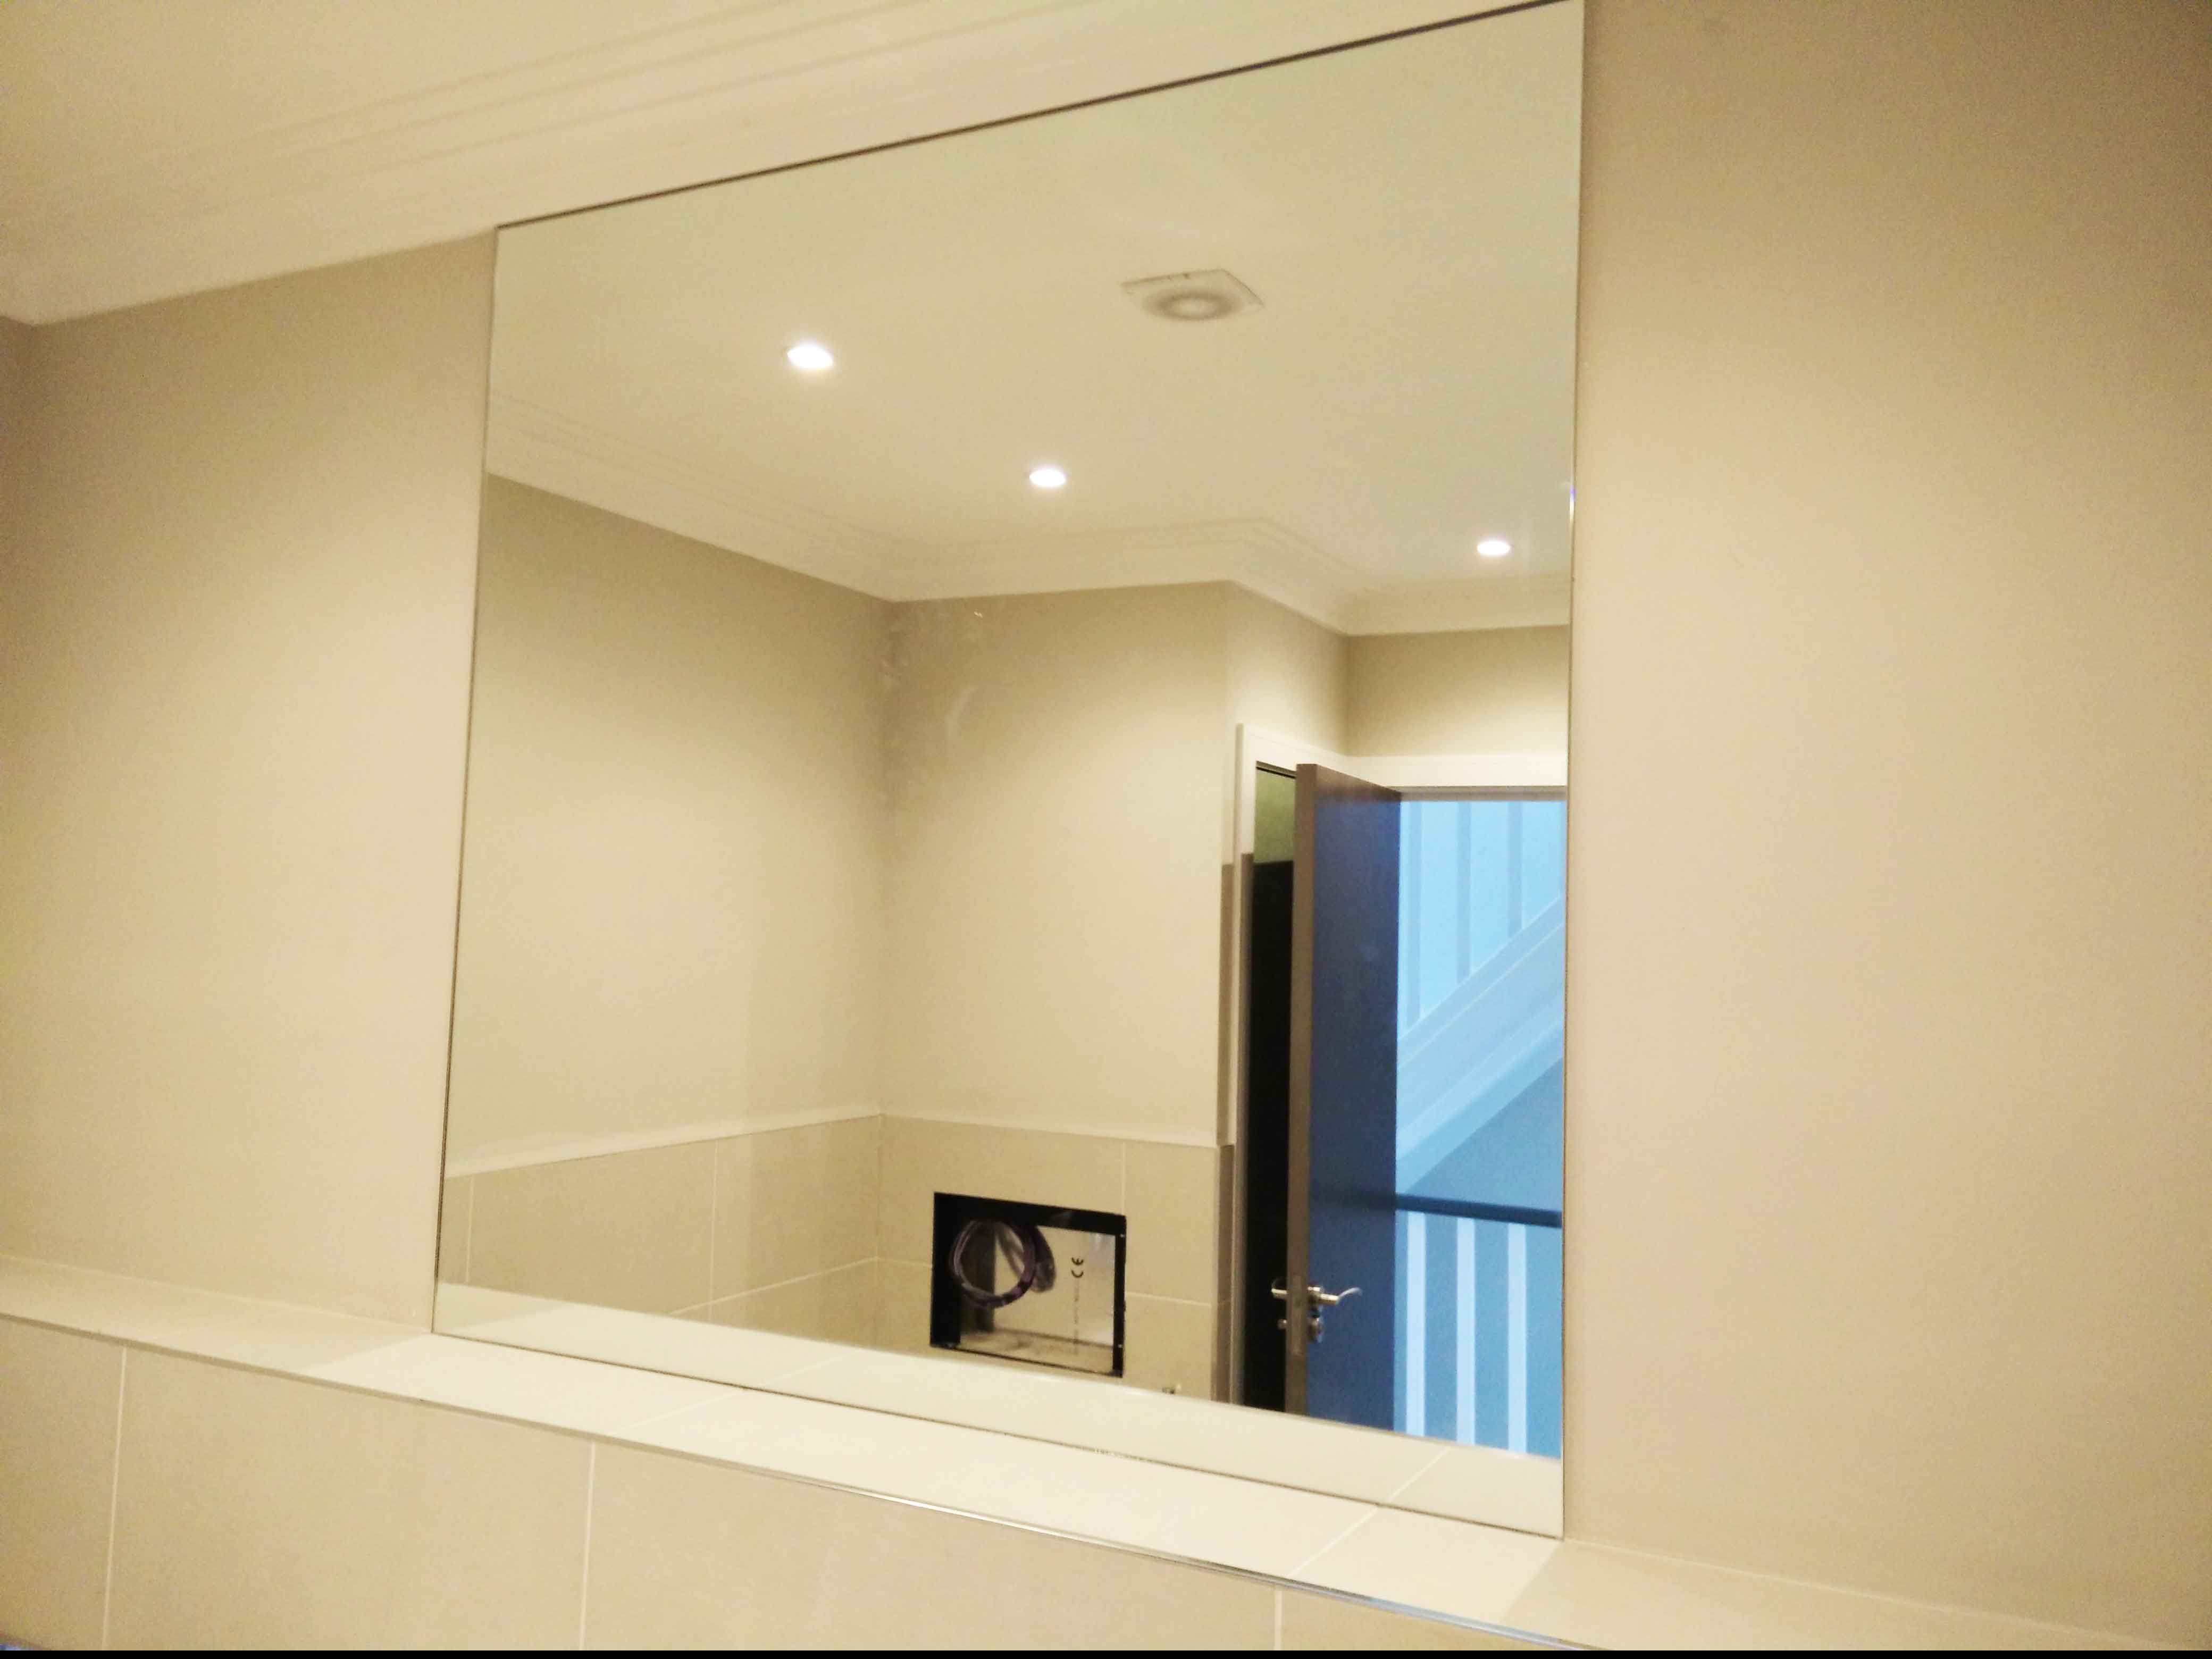 Glass mirror with heat pad for demisting